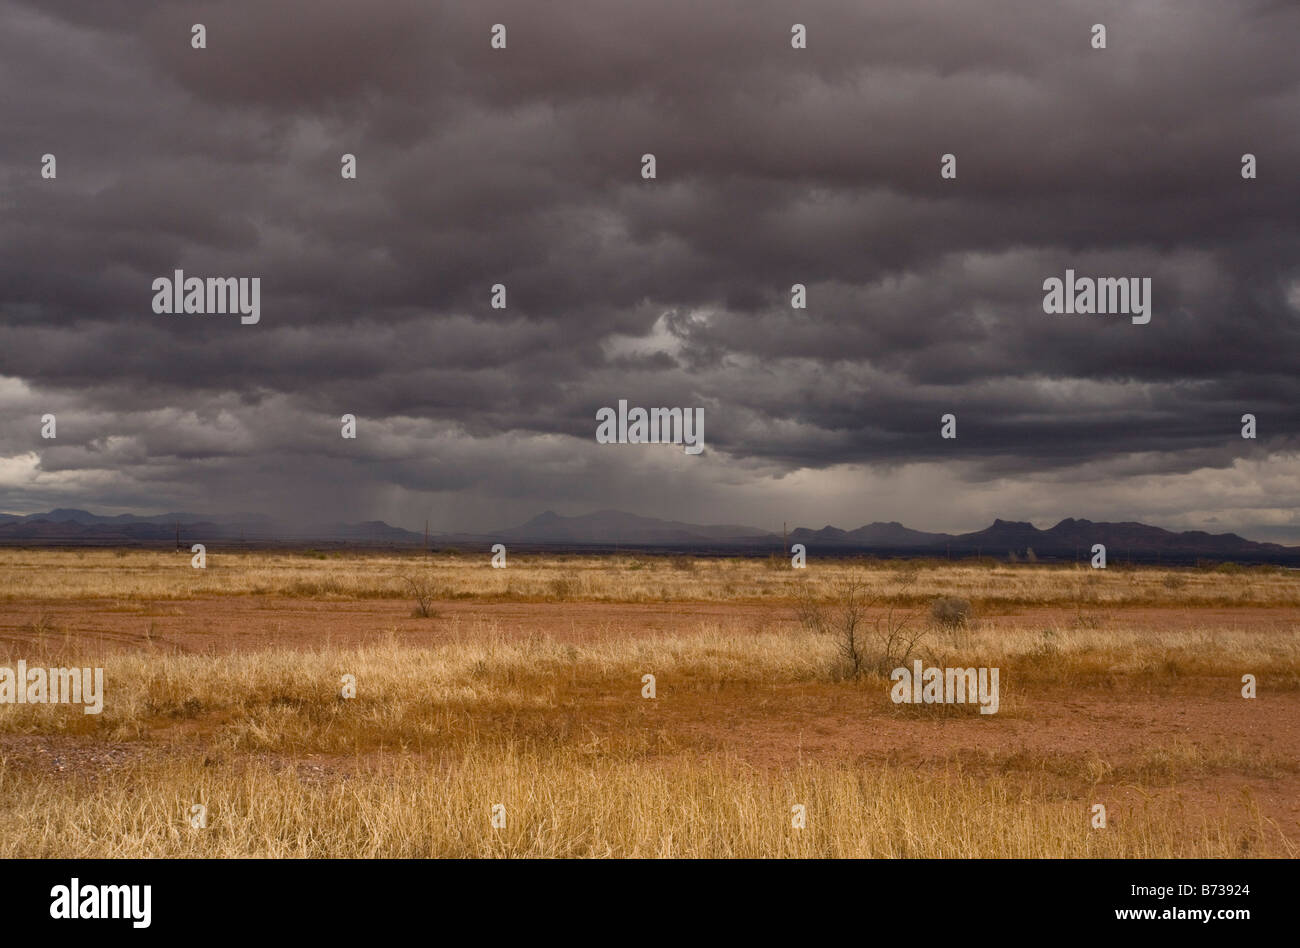 Grasslands and mountains near Douglas on the Arizona Mexico border on a stormy winter evening - Stock Image